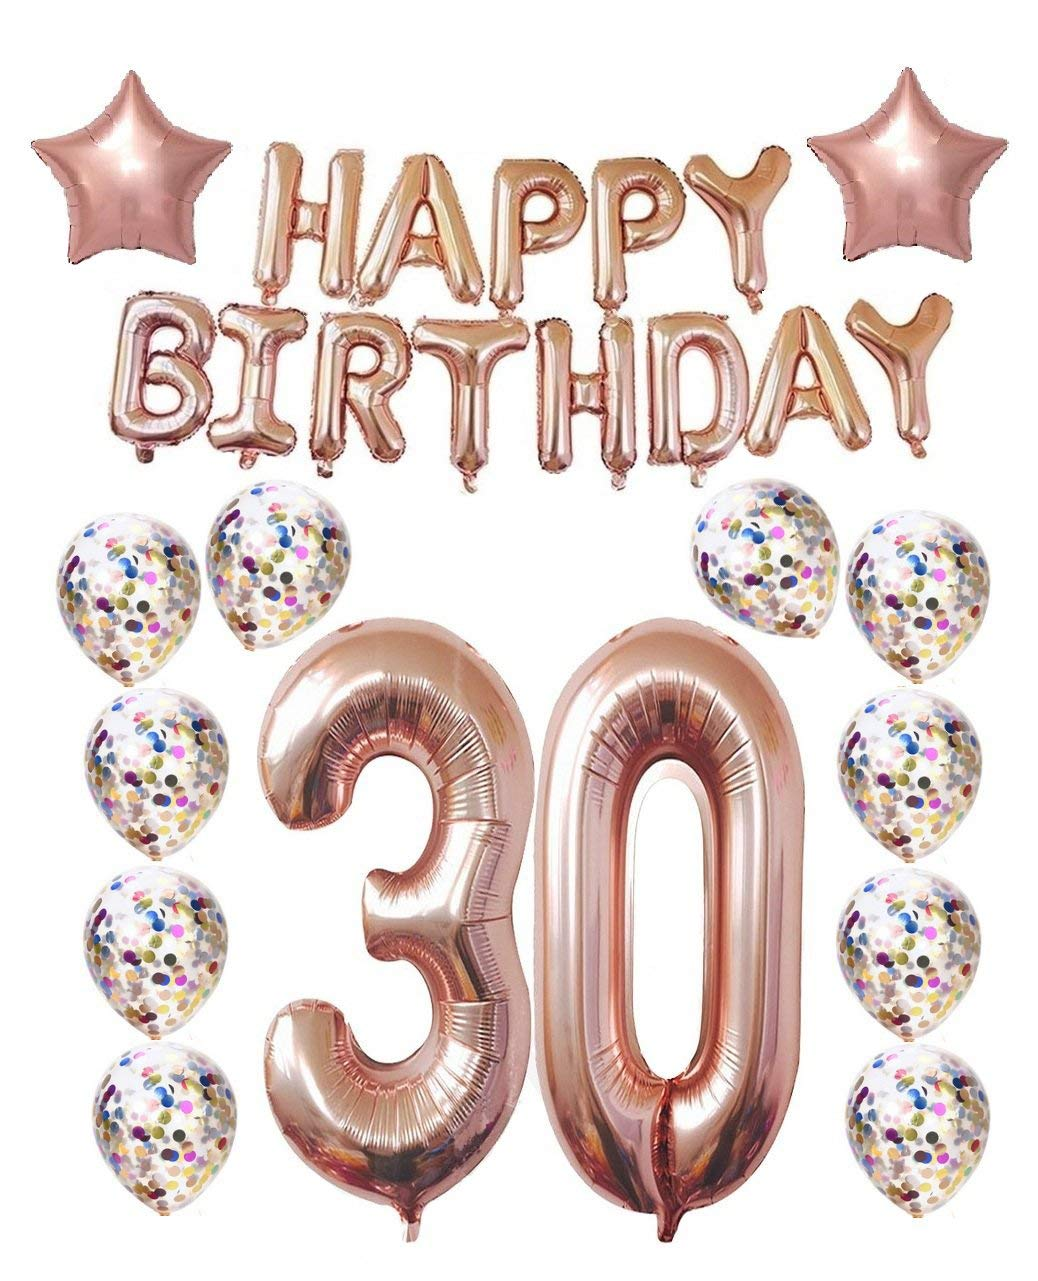 Get Quotations 30th Birthday Decorations Party Supplies30th Balloons Rose GoldRose Gold Hang Happy